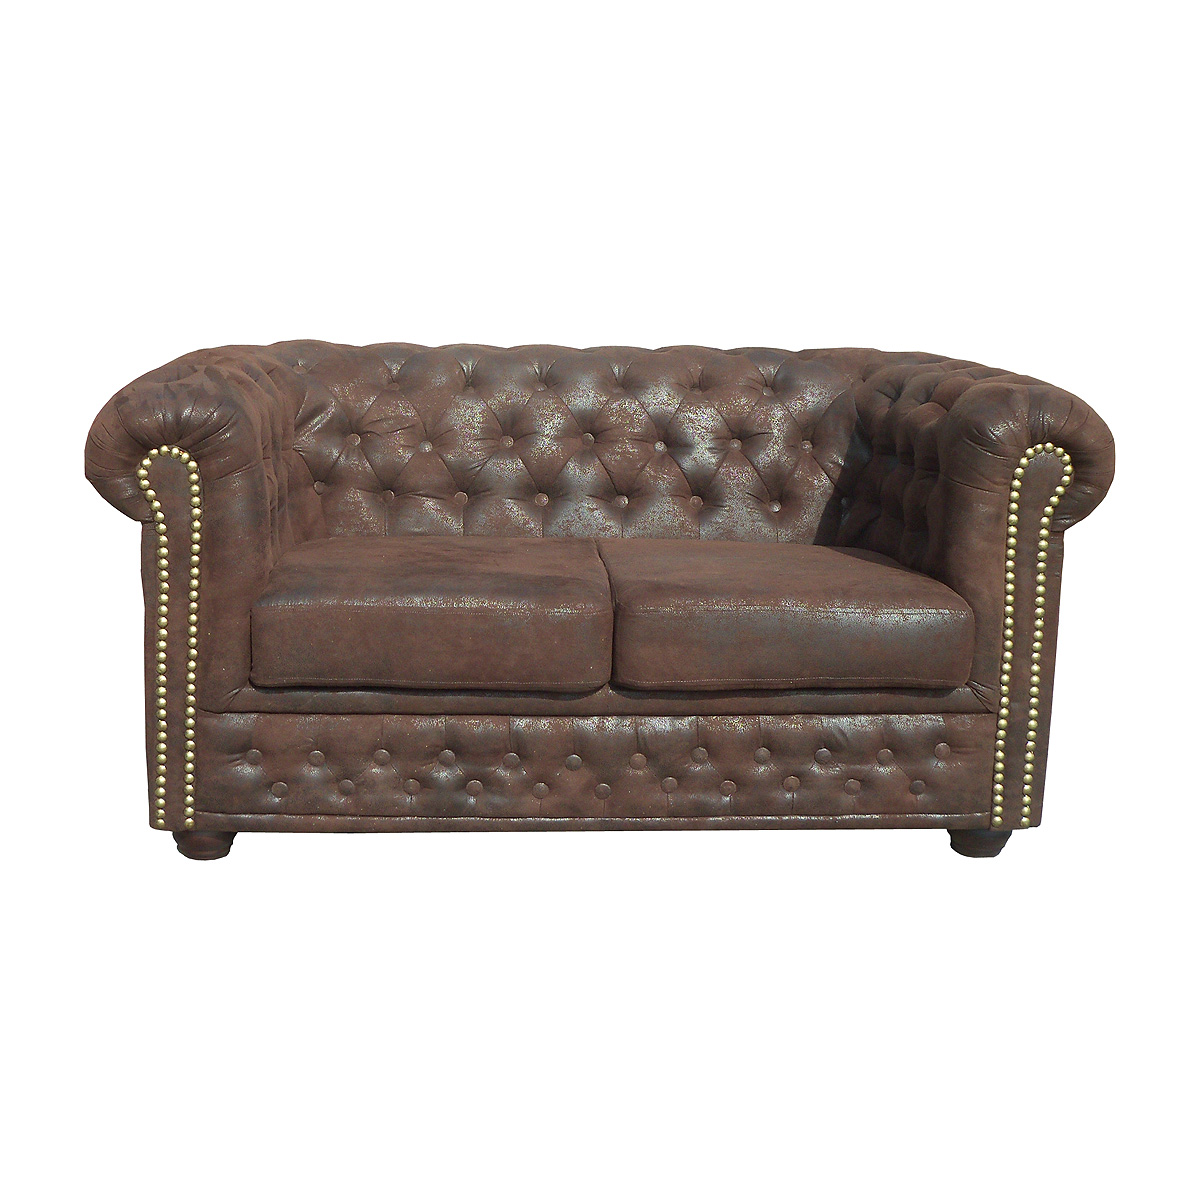 sofa sheffield 2 sitzer chesterfield polsterm bel 2er couch microfaser braun ebay. Black Bedroom Furniture Sets. Home Design Ideas